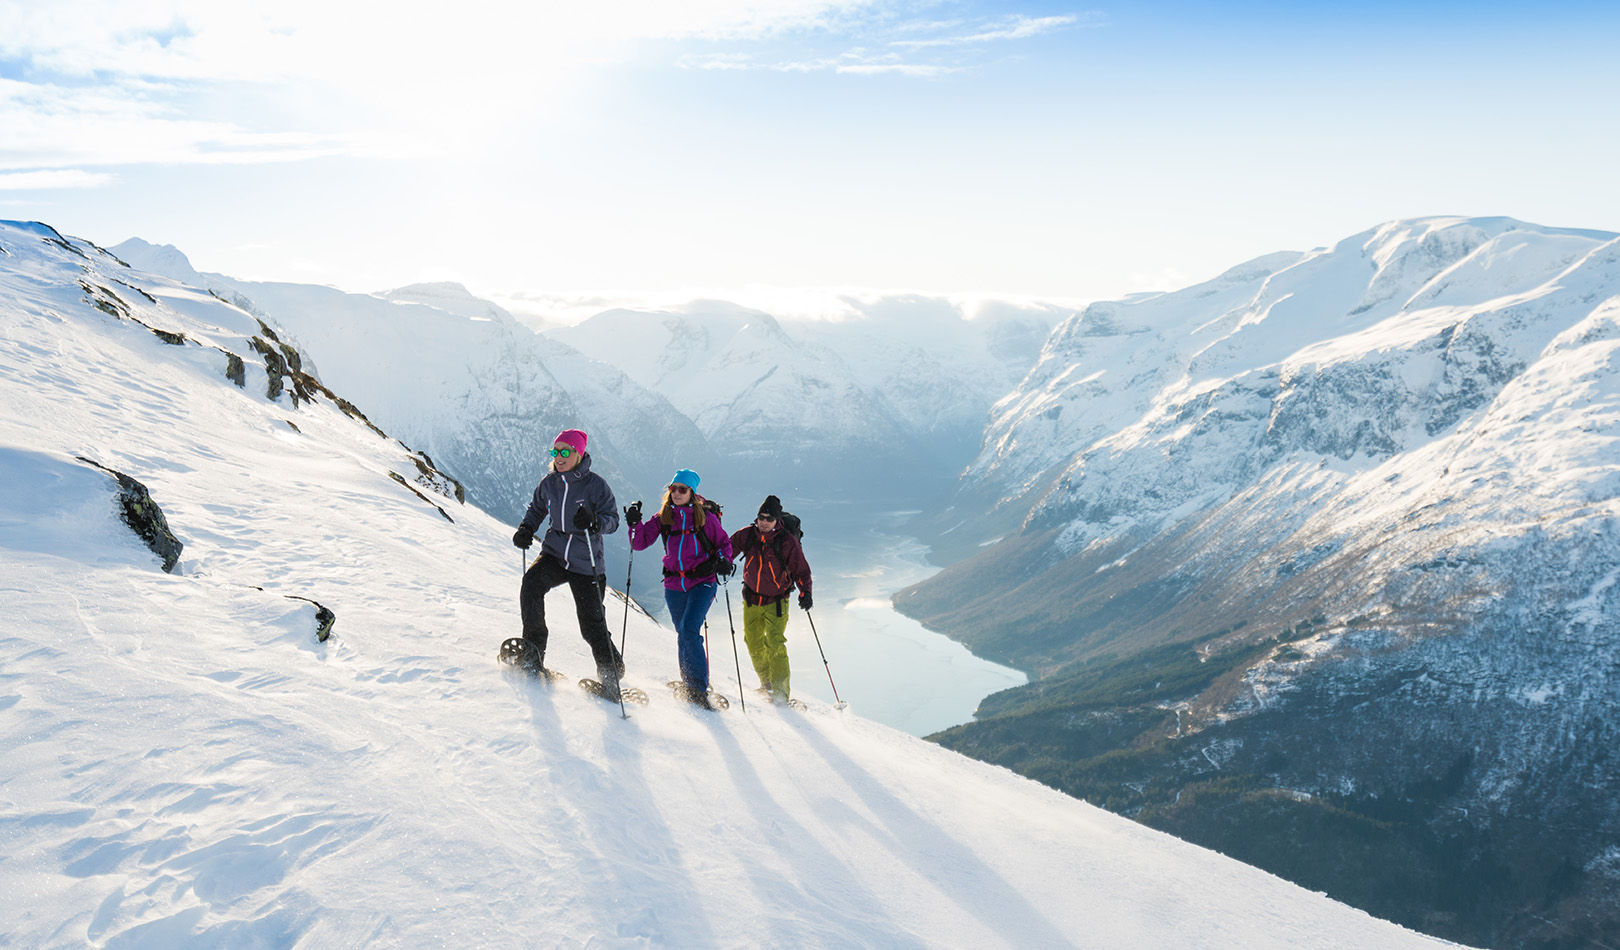 Three people walking with snowshoes on the mountain Hoven, Loen, Stryn with white, snowy mountains in the background.